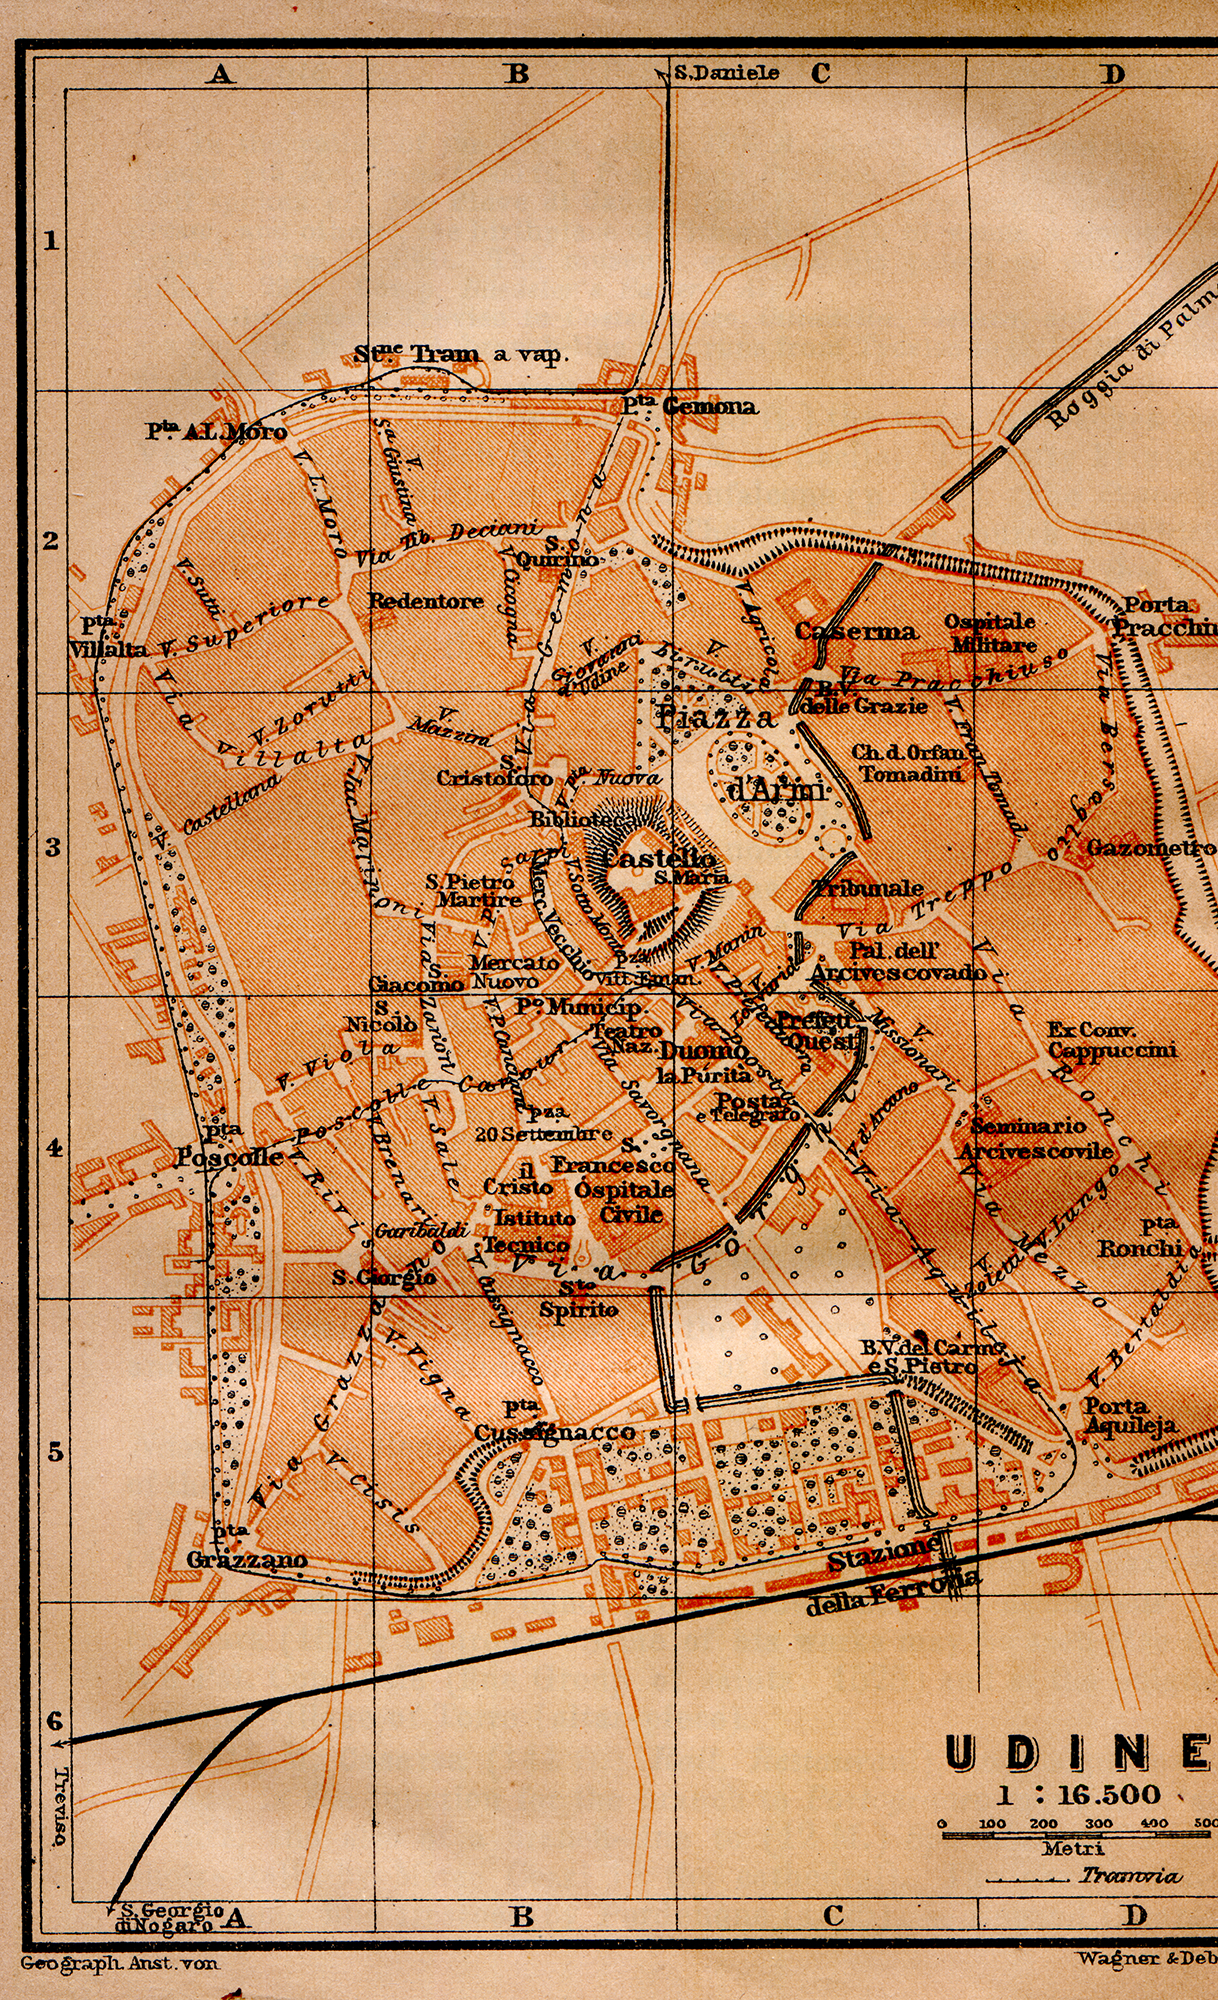 Free Maps Of Northern Italy - Udine map